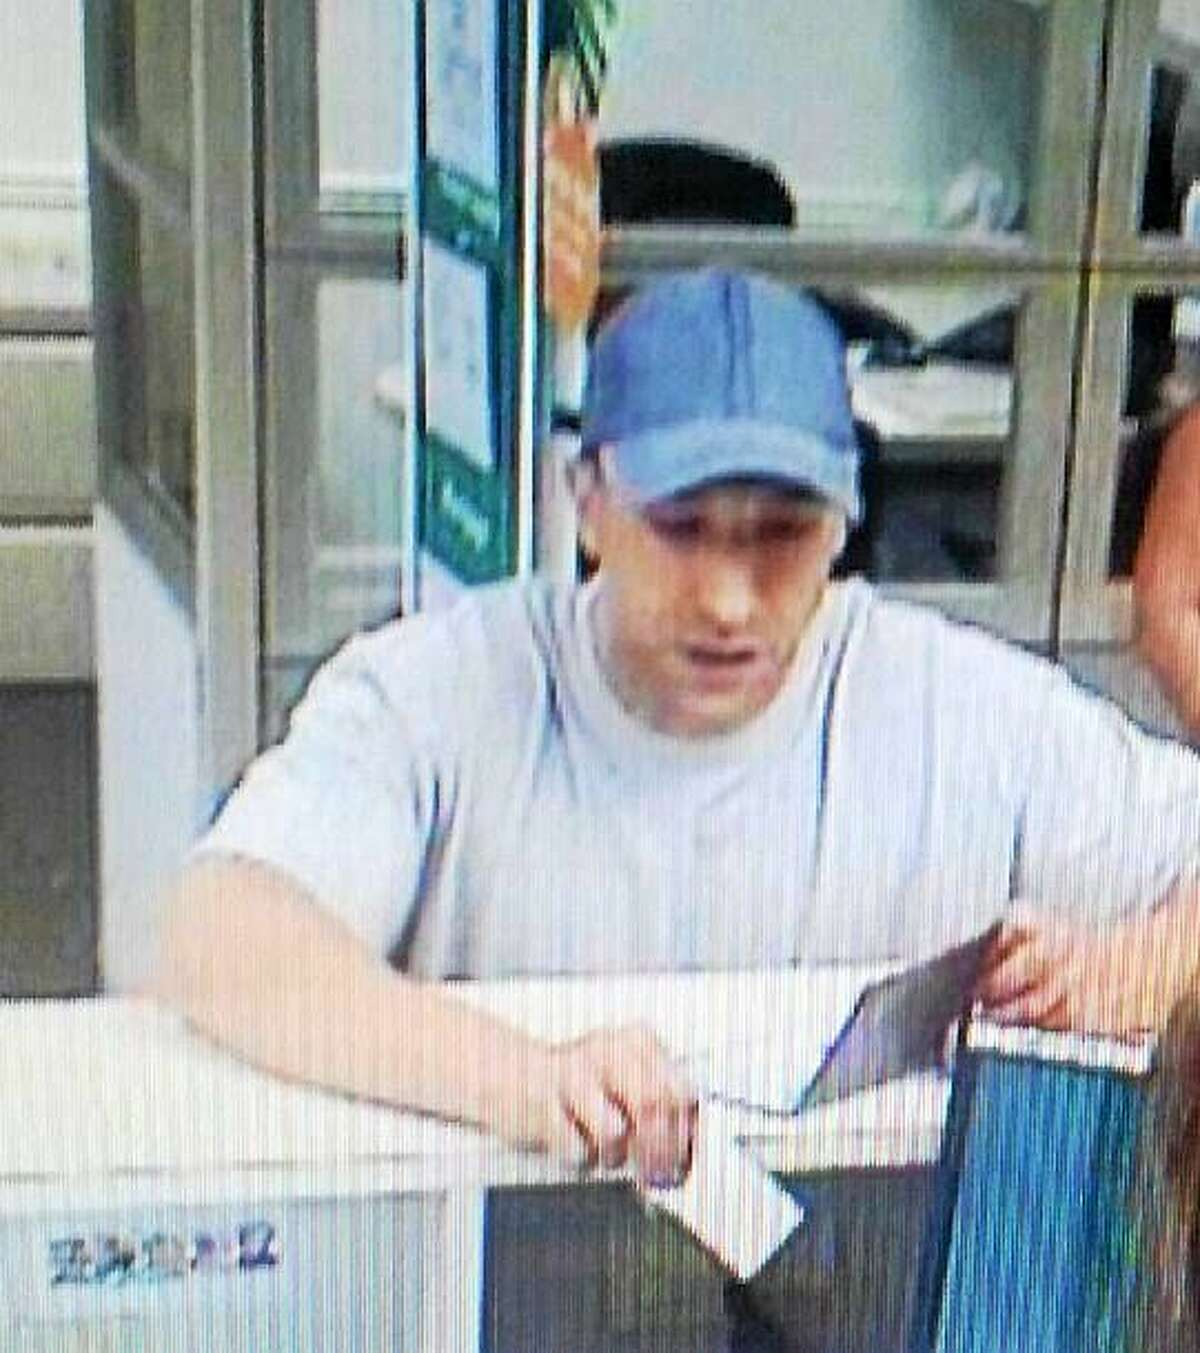 On August 27 around 3:15 p.m. state police responded to the Citizens Bank at 1187 Boston Post Road in Westbrook for a reported bank robbery. (Courtesy of Connecticut State Police)